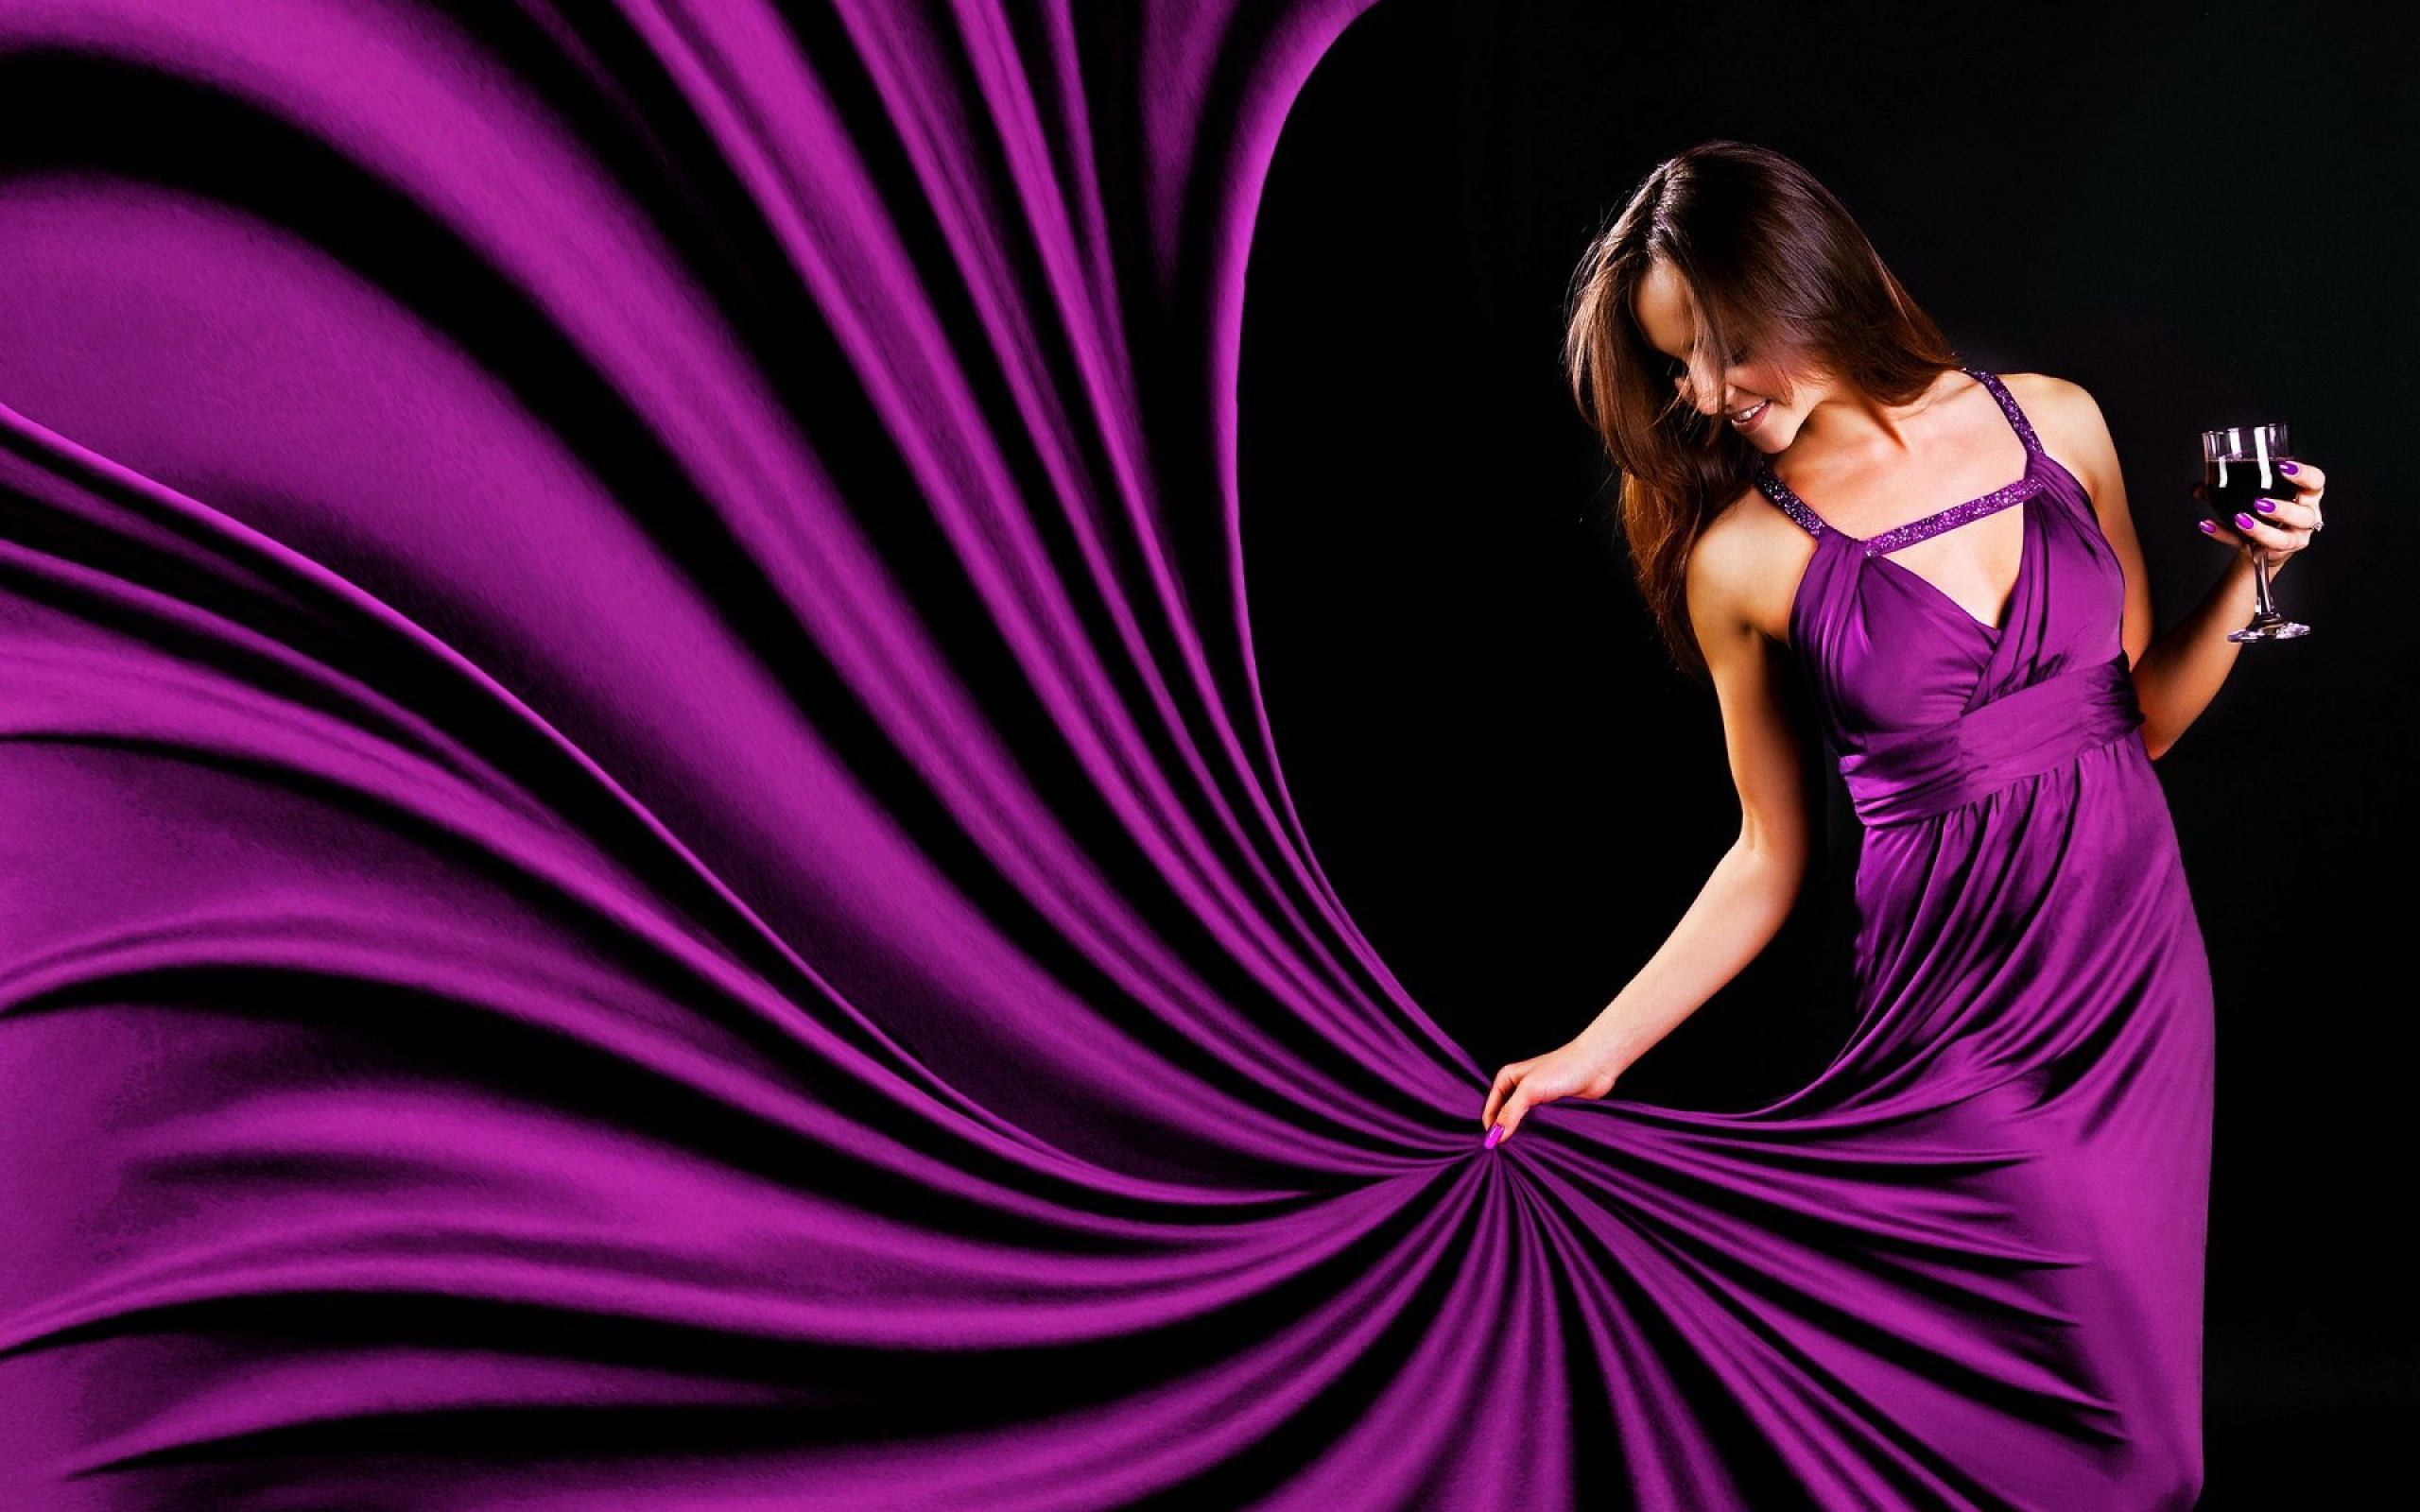 Dress Desktop Backgrounds